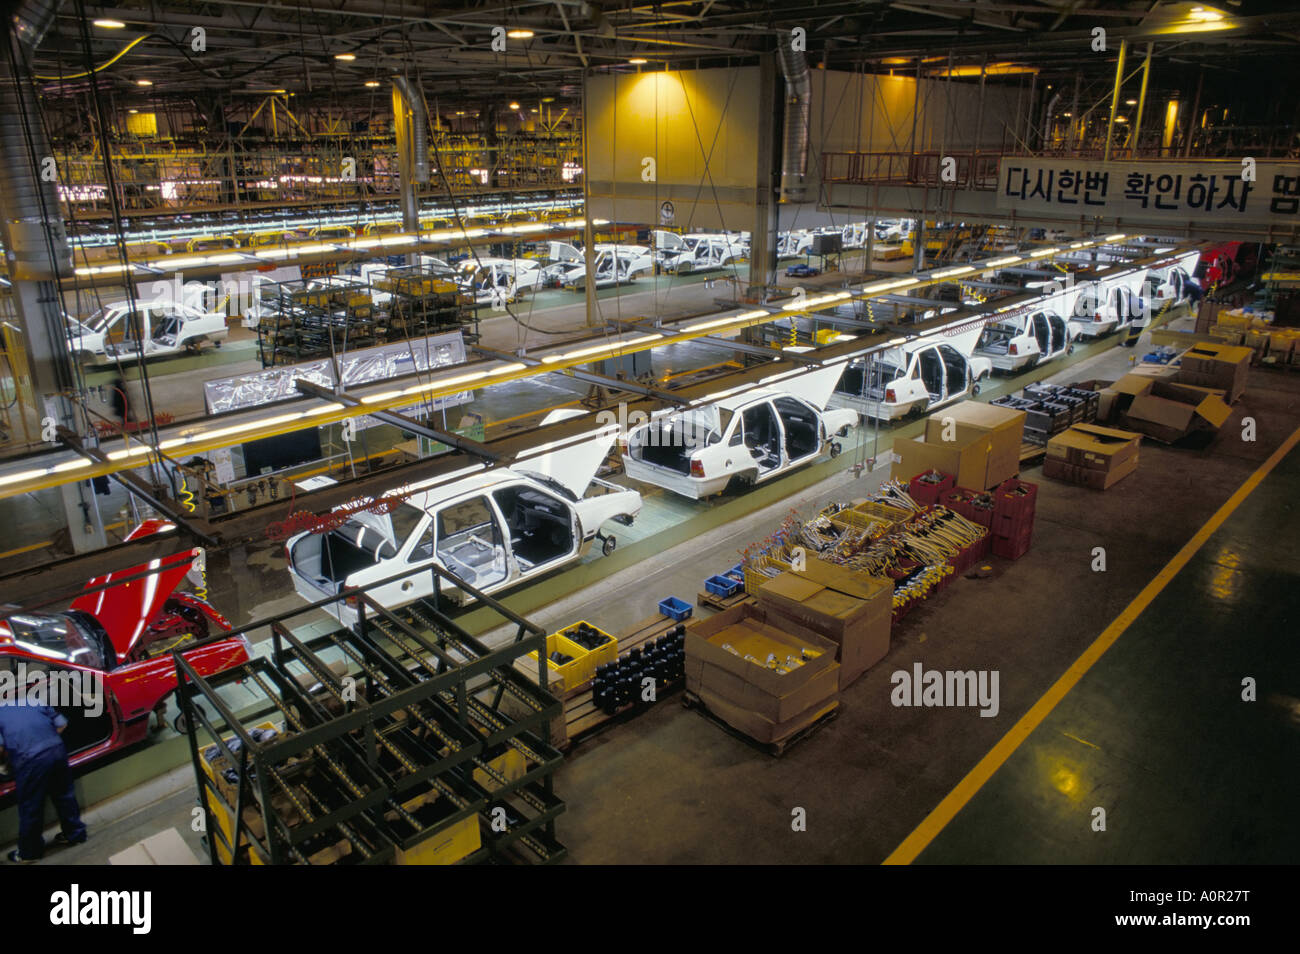 Daewoo Stock Photos Images Page 3 Alamy Cielo Workshop Manual English Car Assembly Line South Korea Asia Image